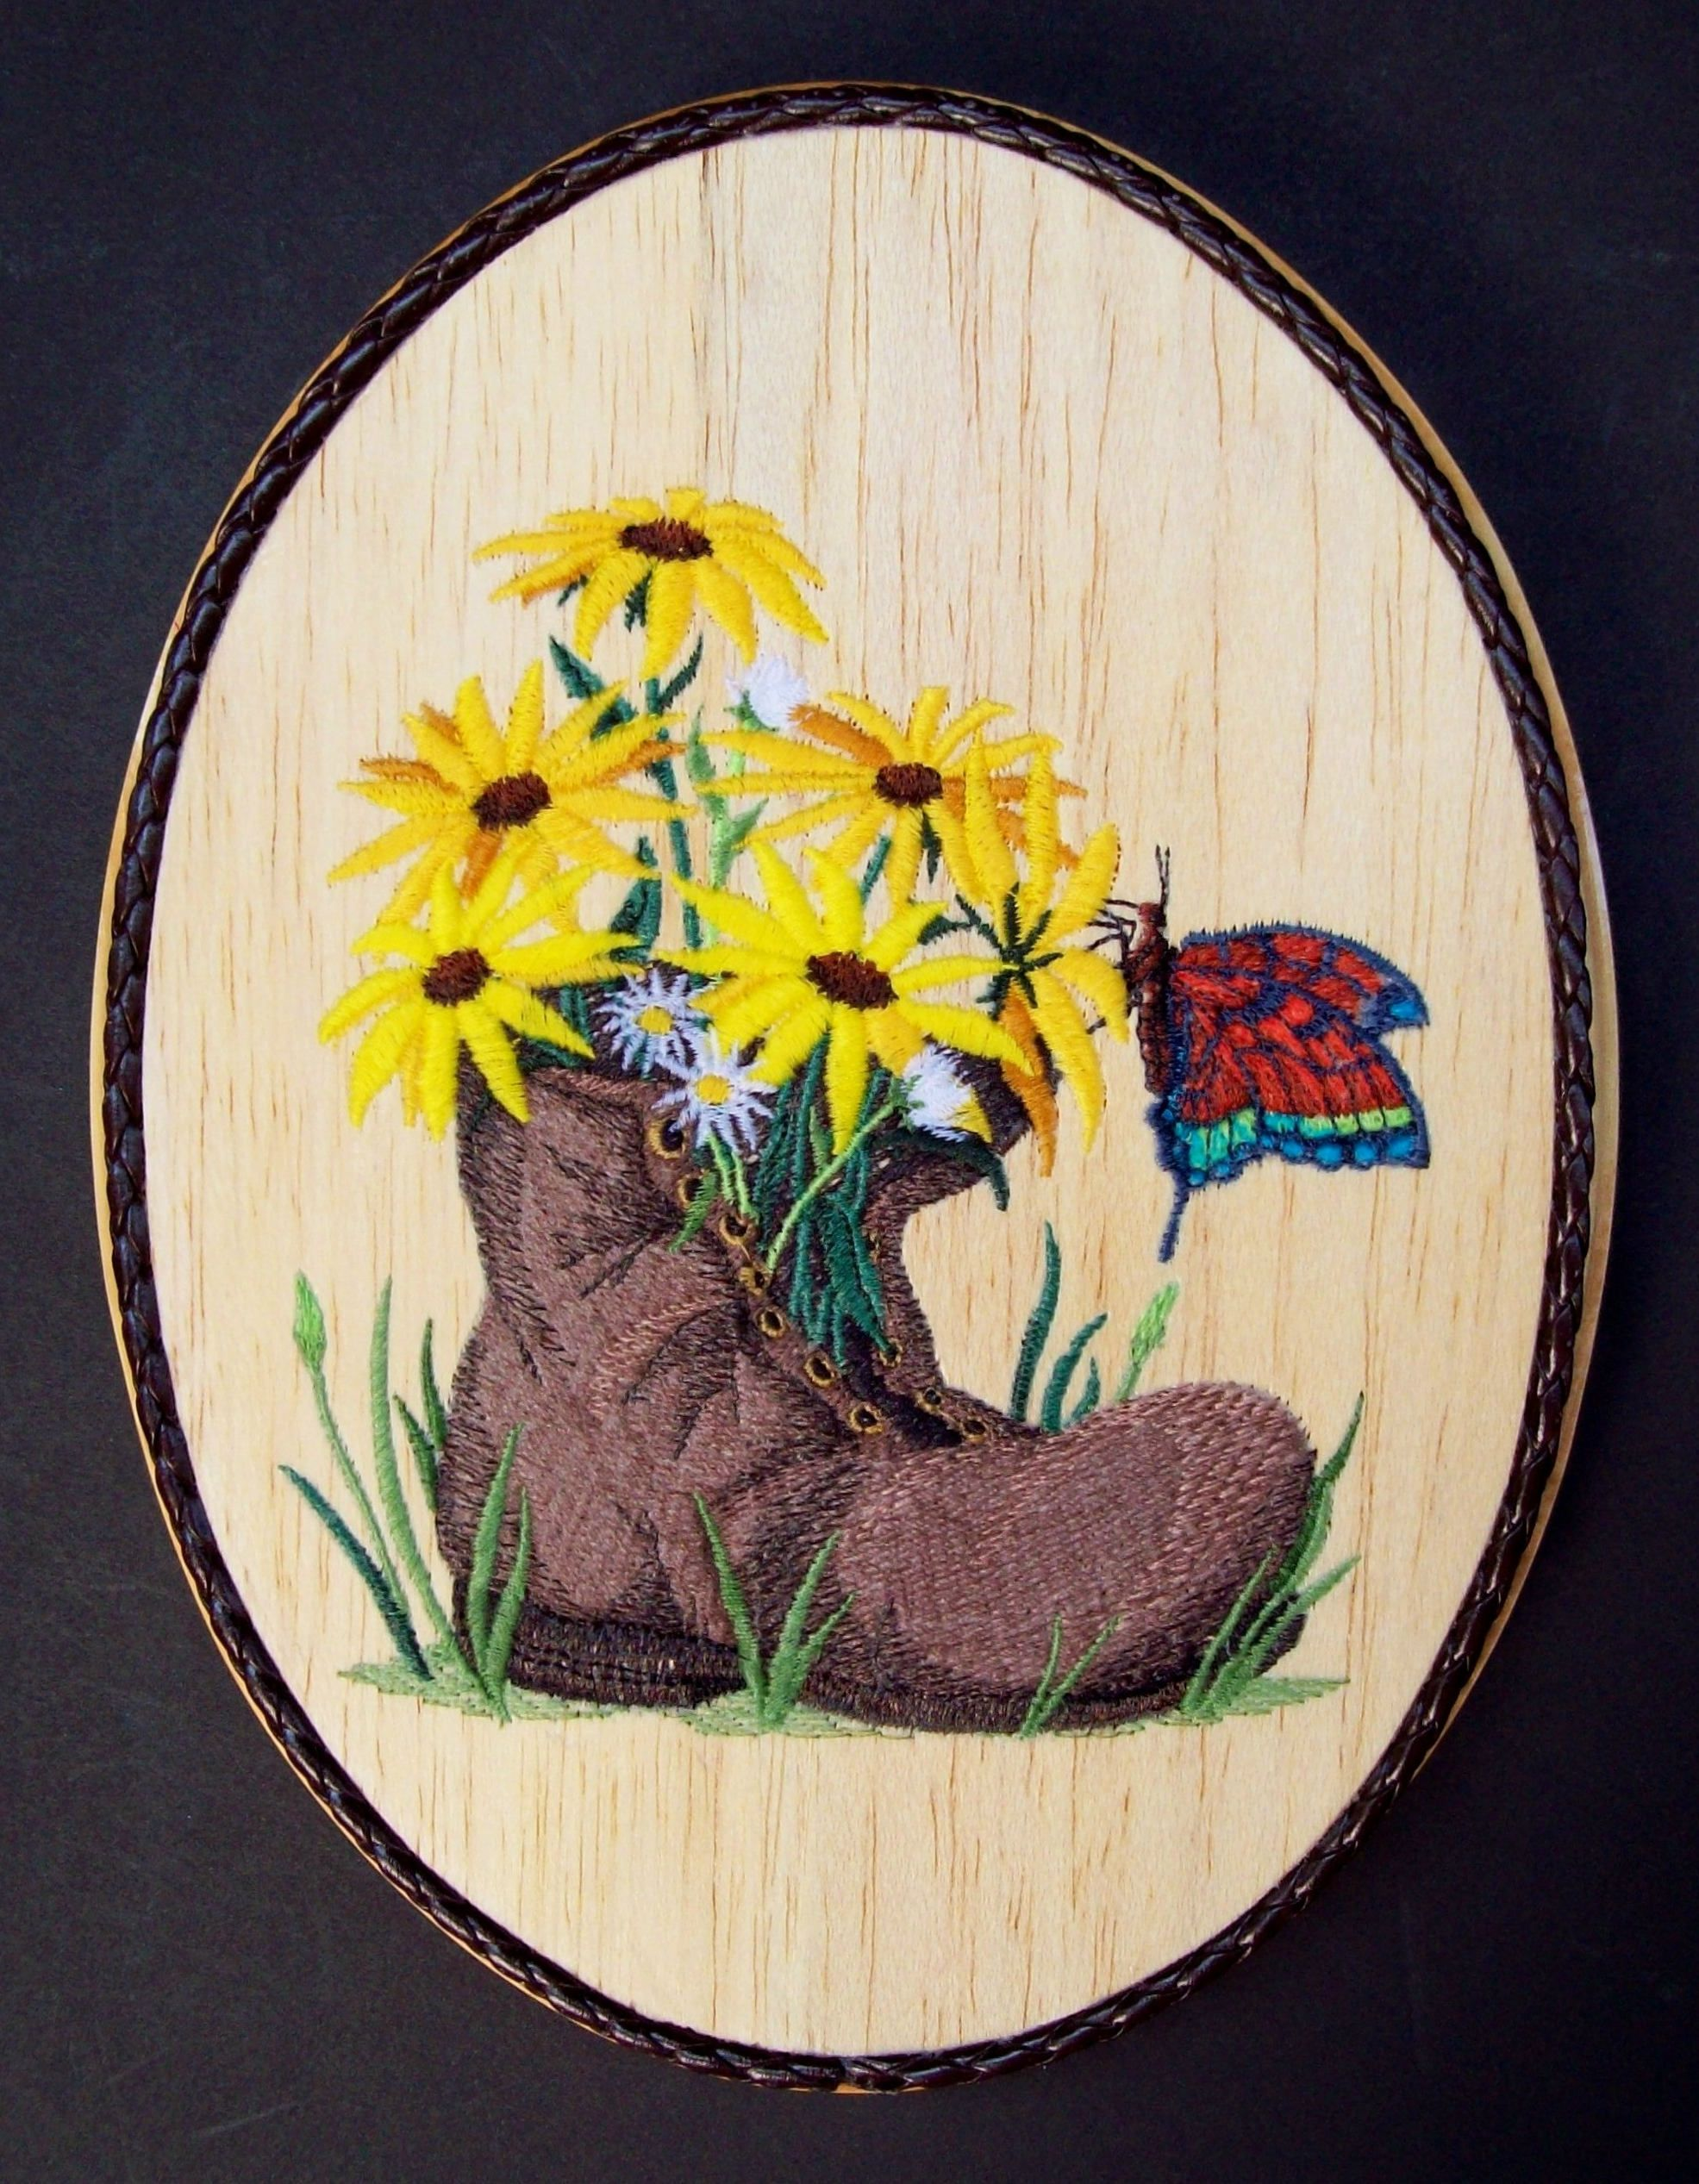 Garden Wall Decor, Boot Flower Pot Embroidery Wood Art, Country ...